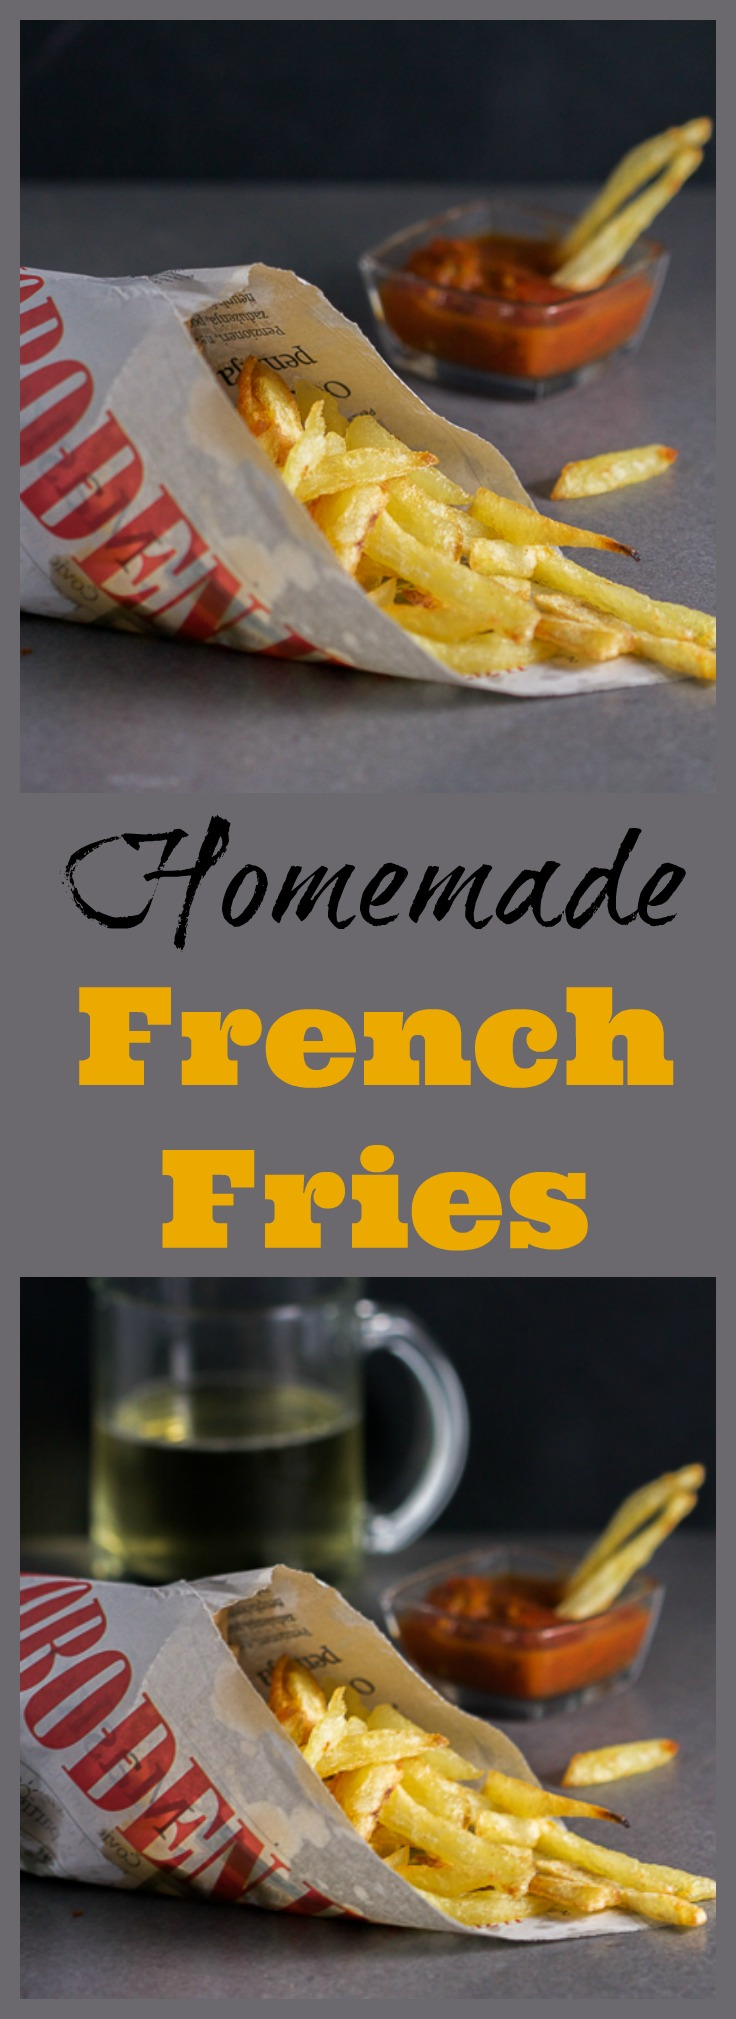 Golden-yellow, soft yet with just the right amount of crispiness, these homemade fries will melt in your mouth. If you've never tried making these at home, today is the day!